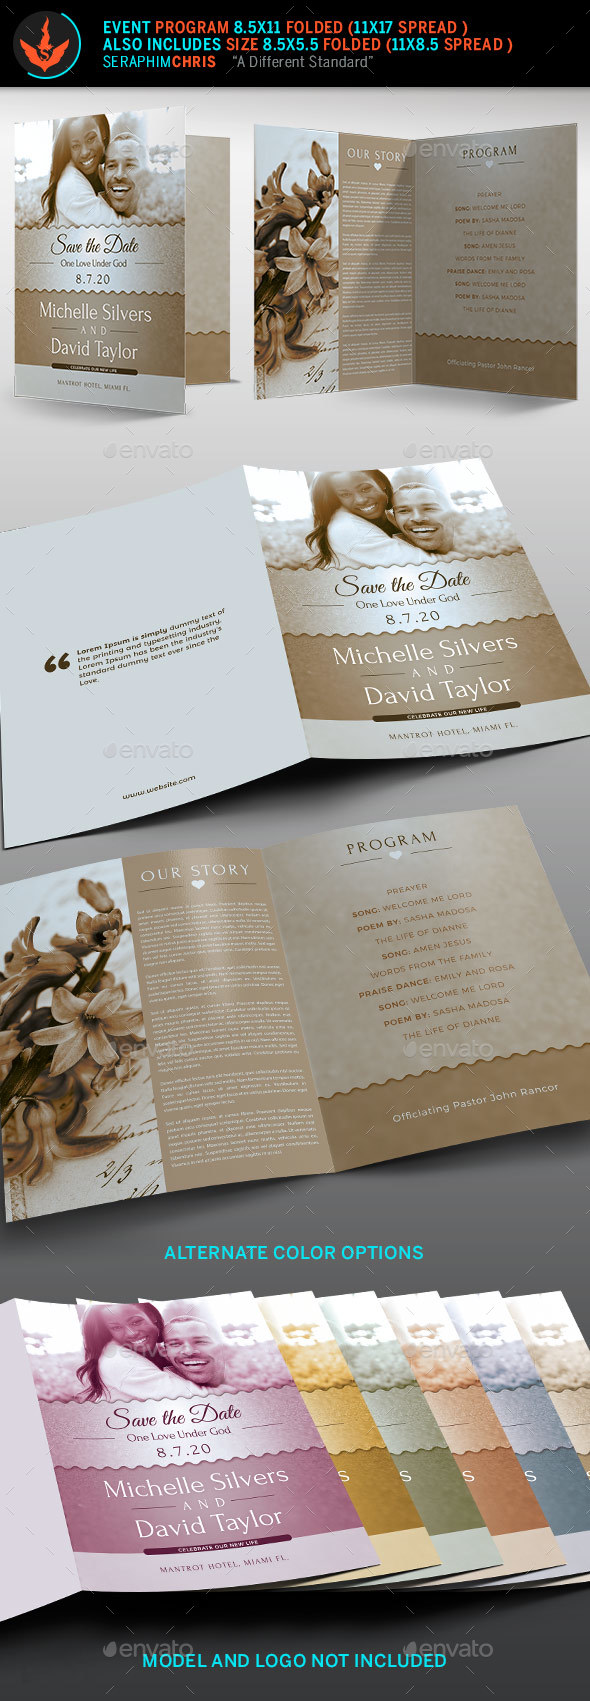 GraphicRiver Vintage Wedding Program Template 20901562